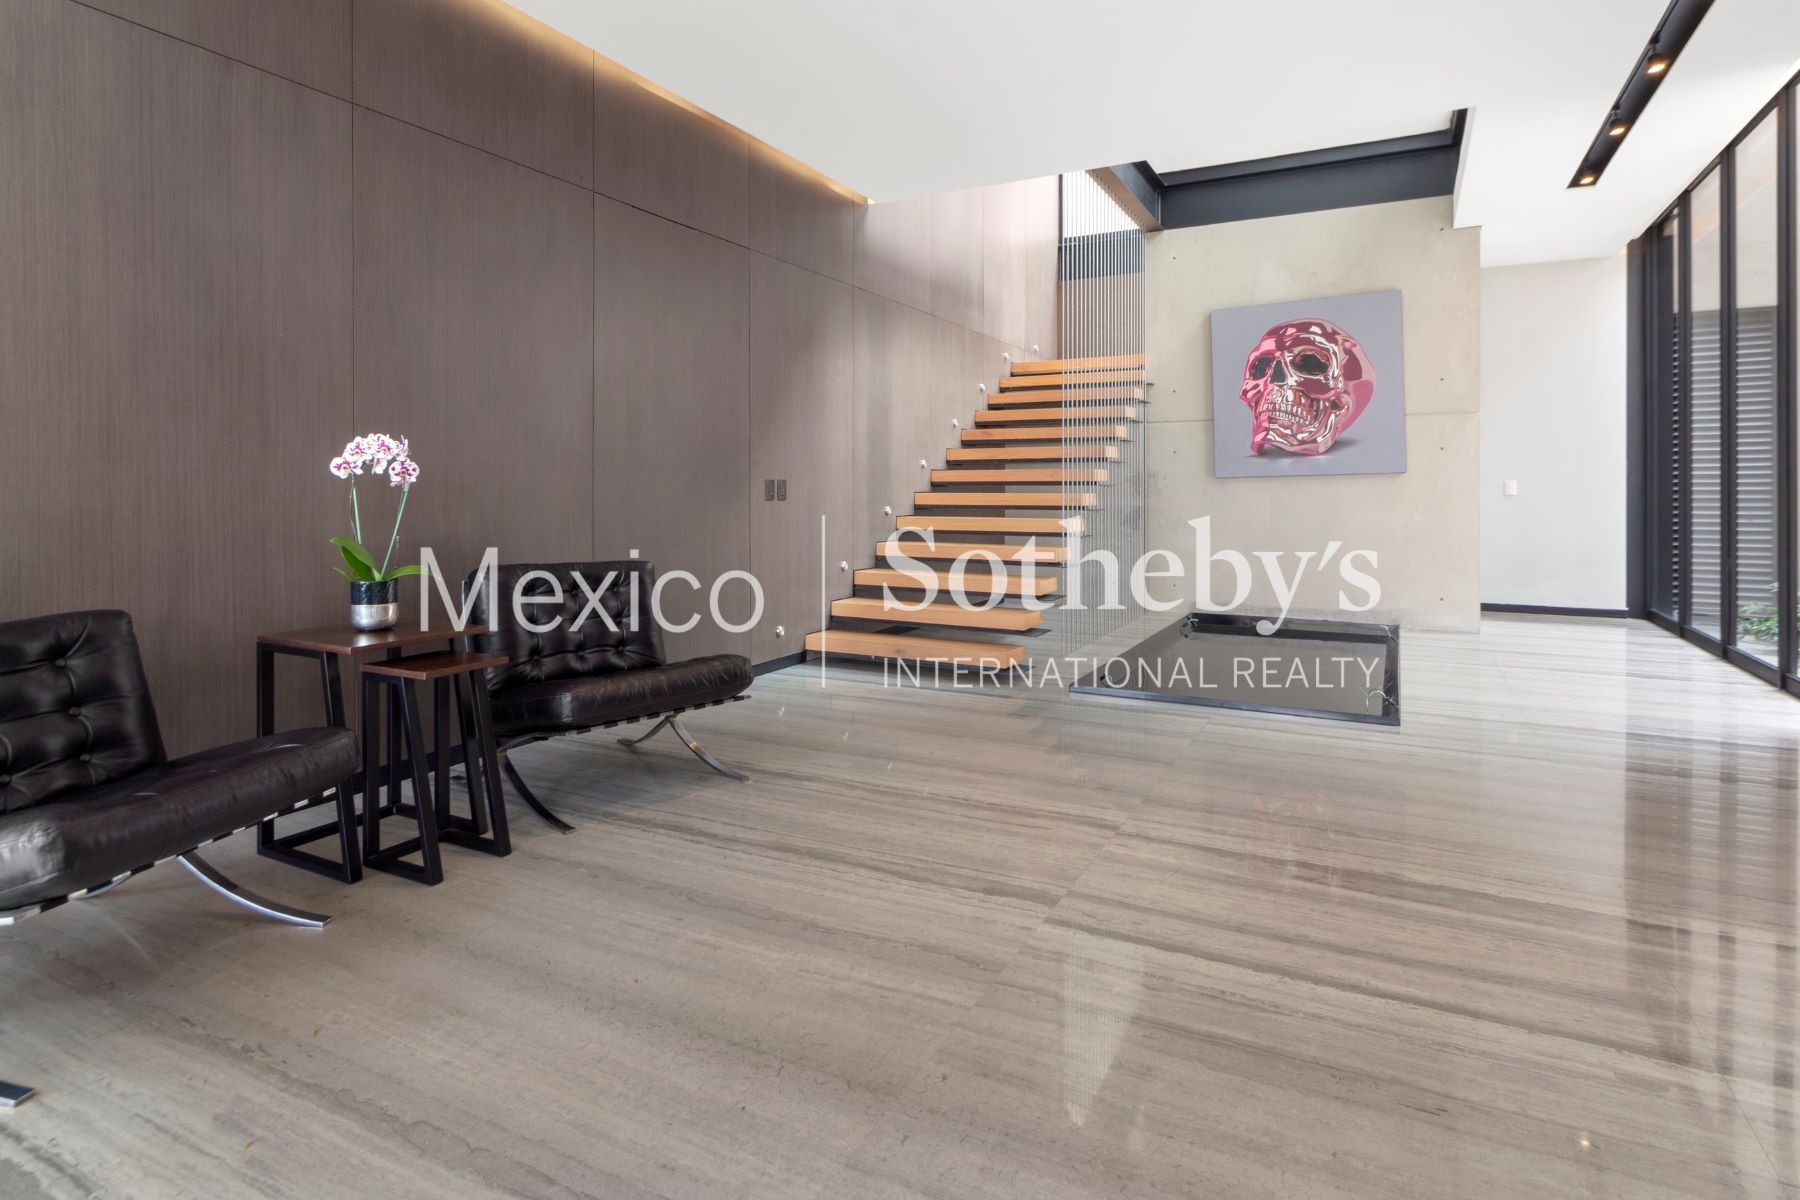 Additional photo for property listing at Privada de Fuente de Peninsula 51 Huixquilucan, Andere Gebieden In Mexico 06600 Mexico